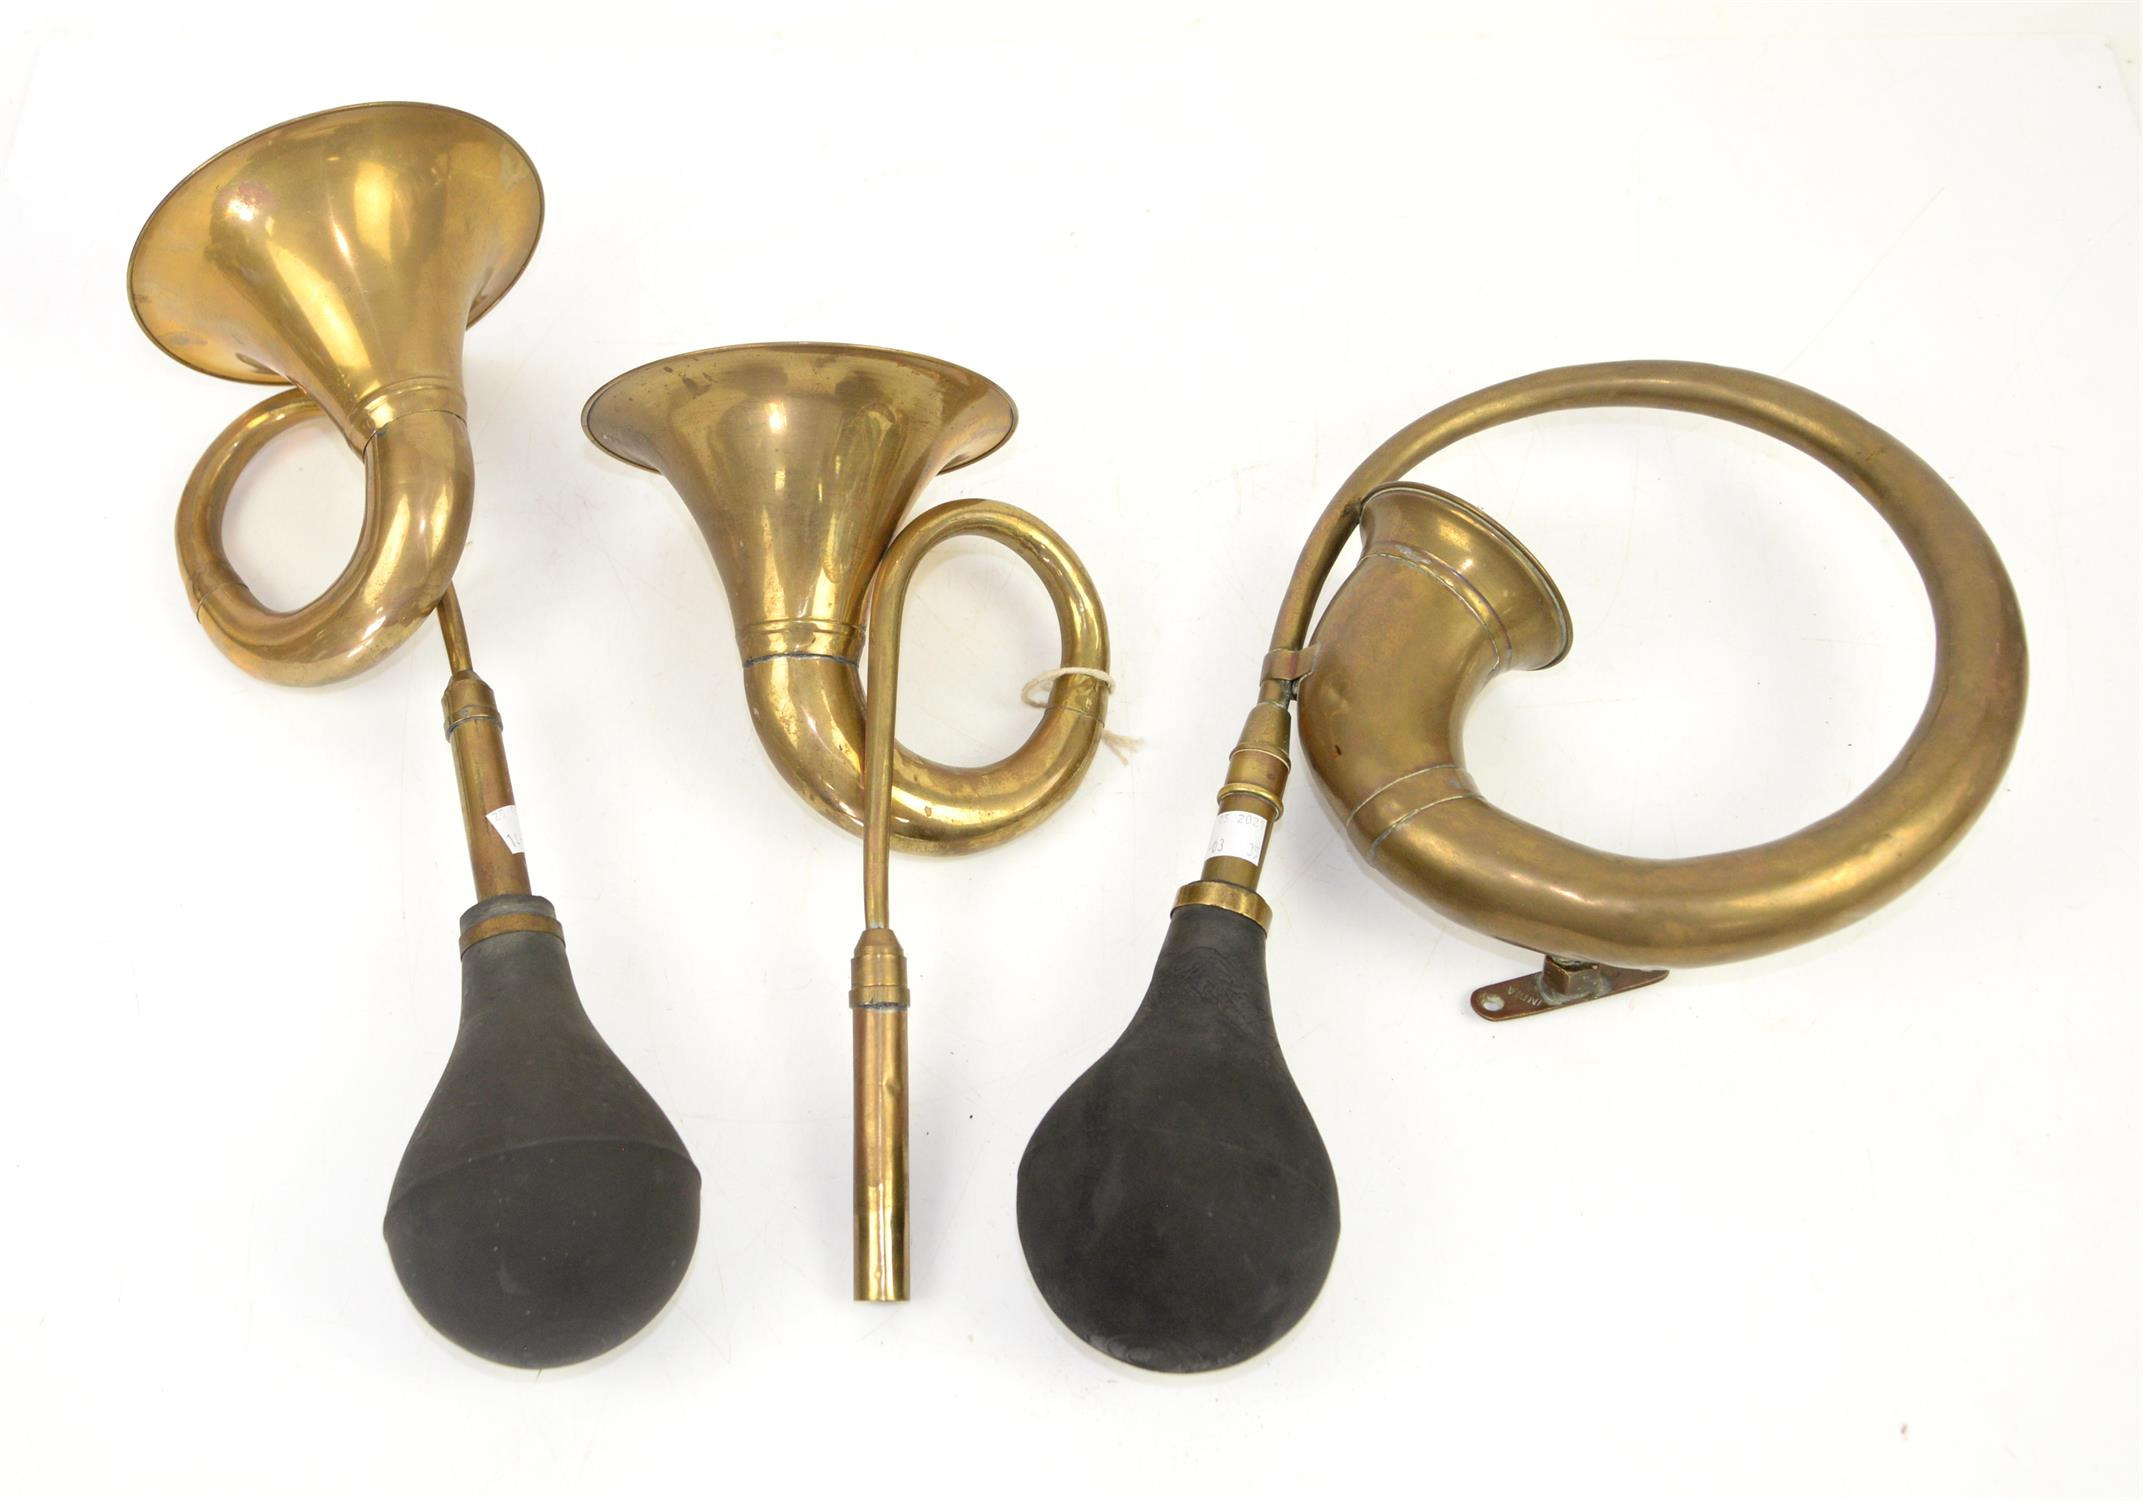 Vintage brass car horn and two later car horns